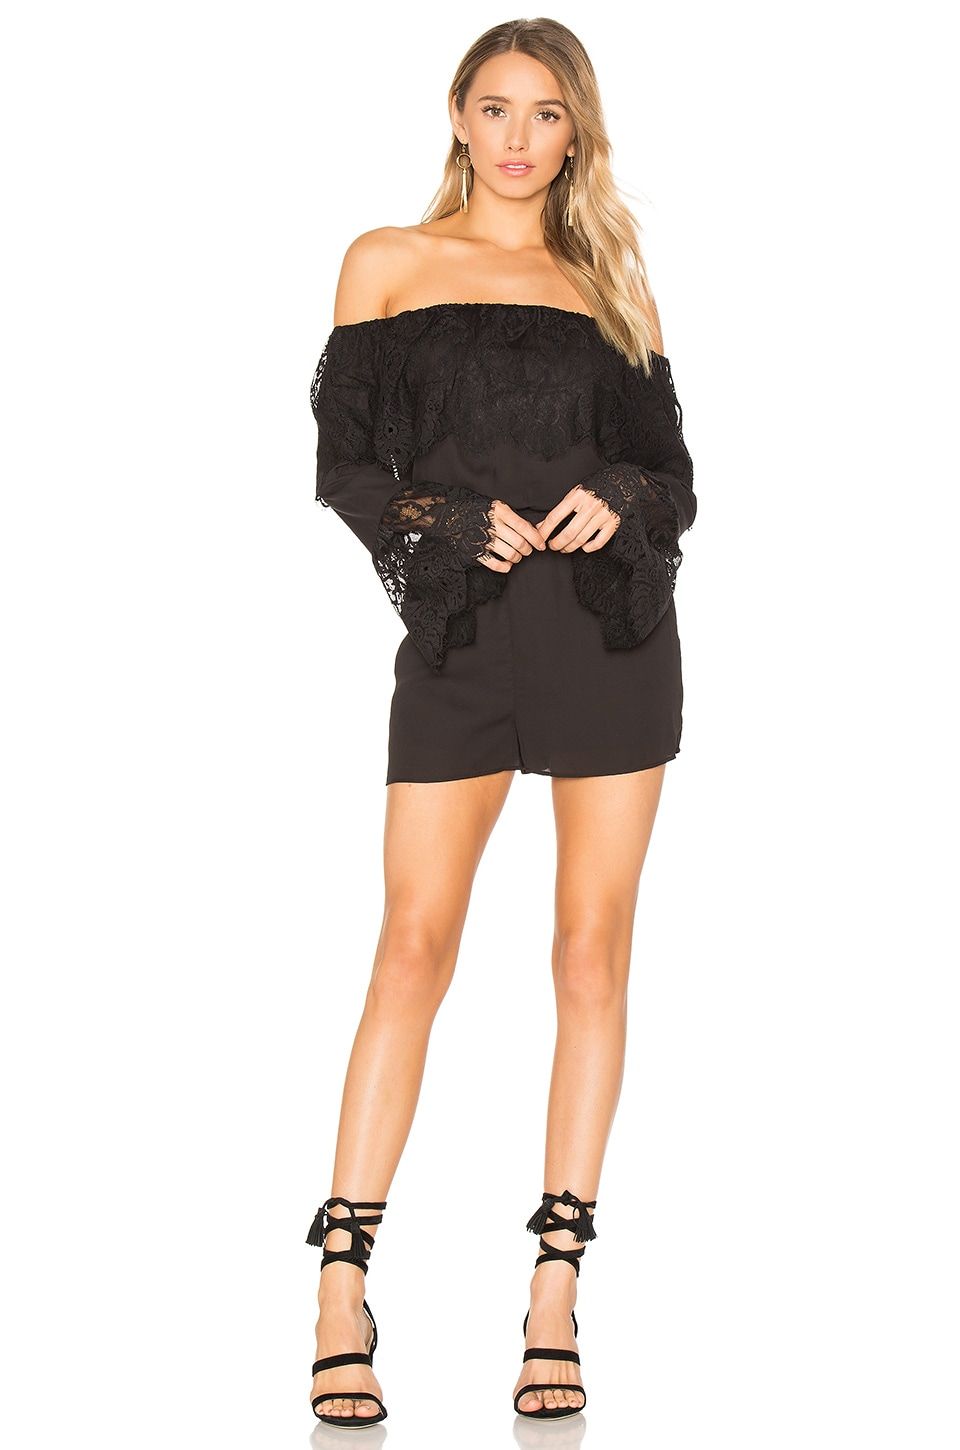 Photo of Cavell Romper by Bb Dakota on sale